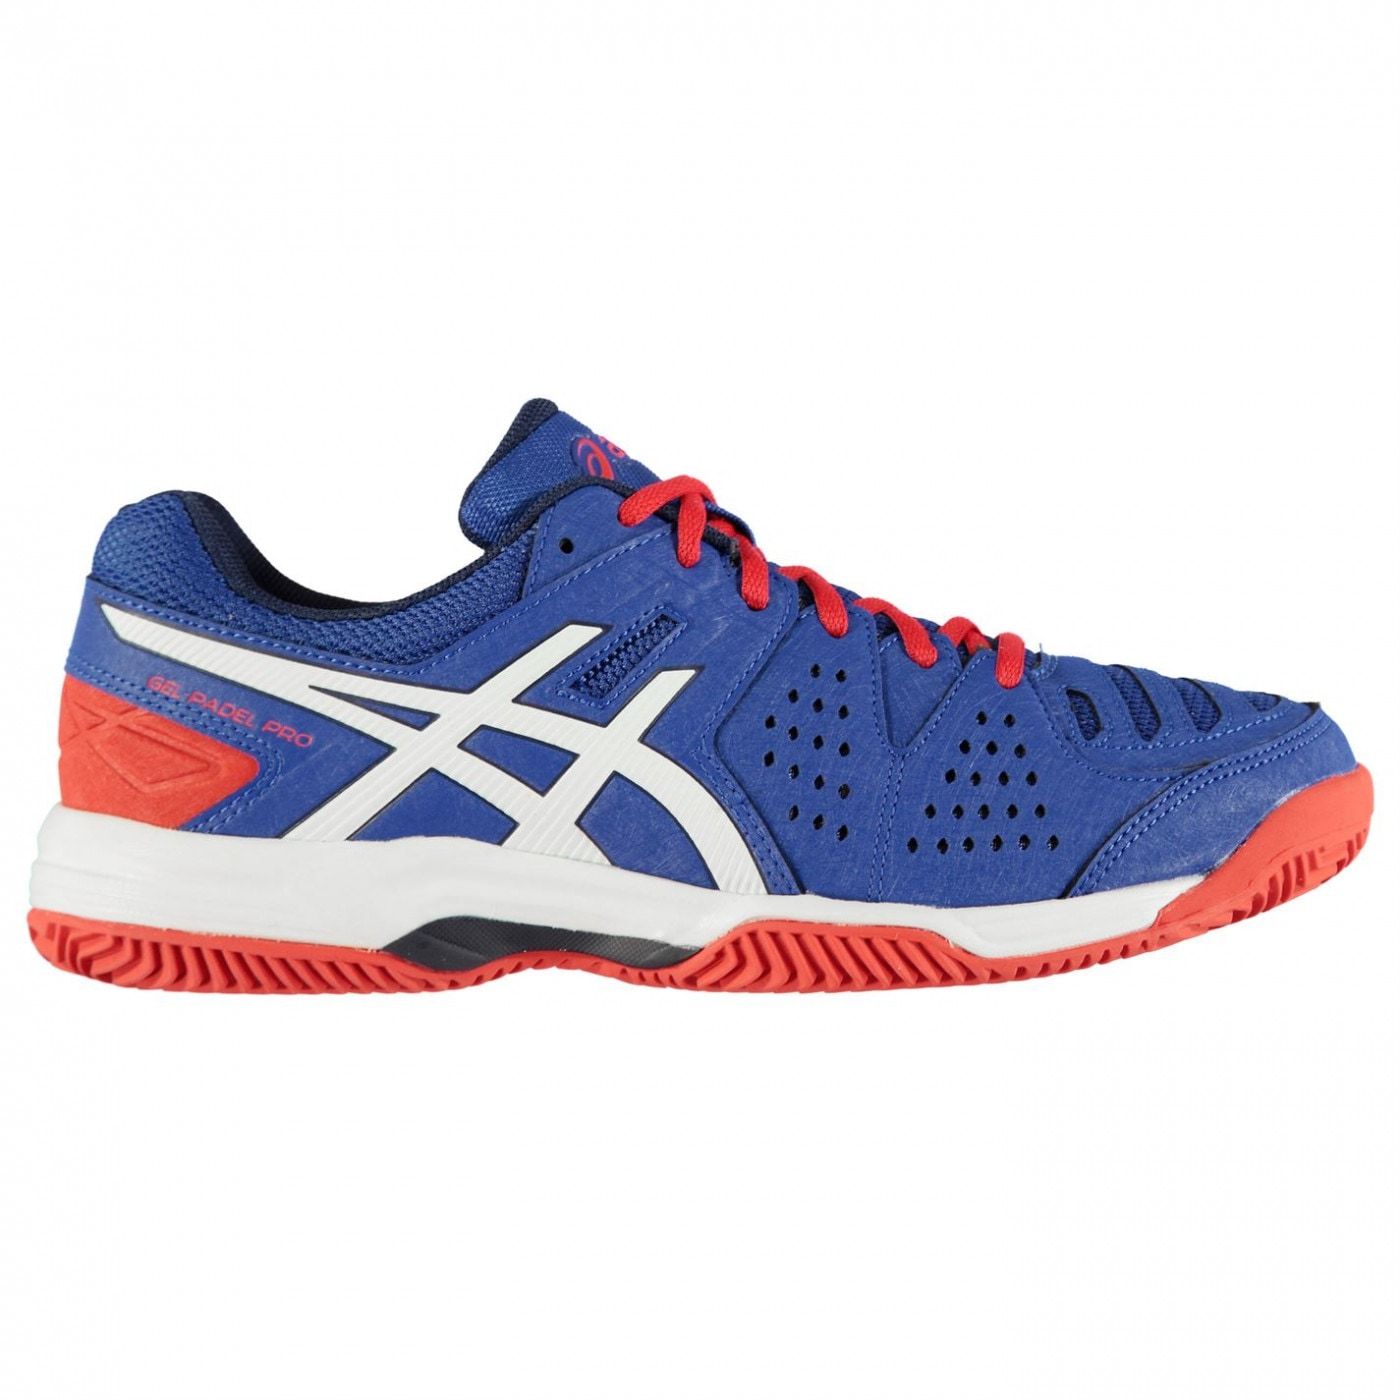 Asics GEL Padel Pro 3 SG Mens Tennis Shoes